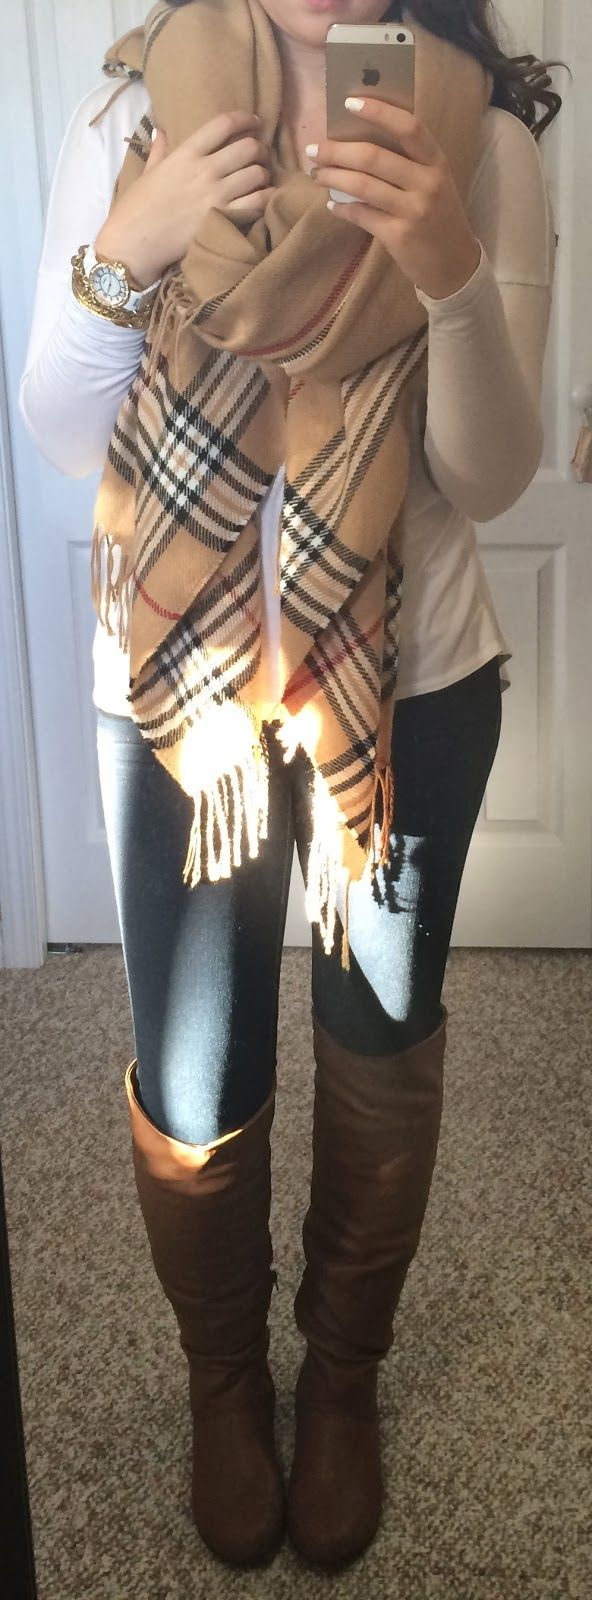 JacyJoan: College Closet: Go To Outfits!